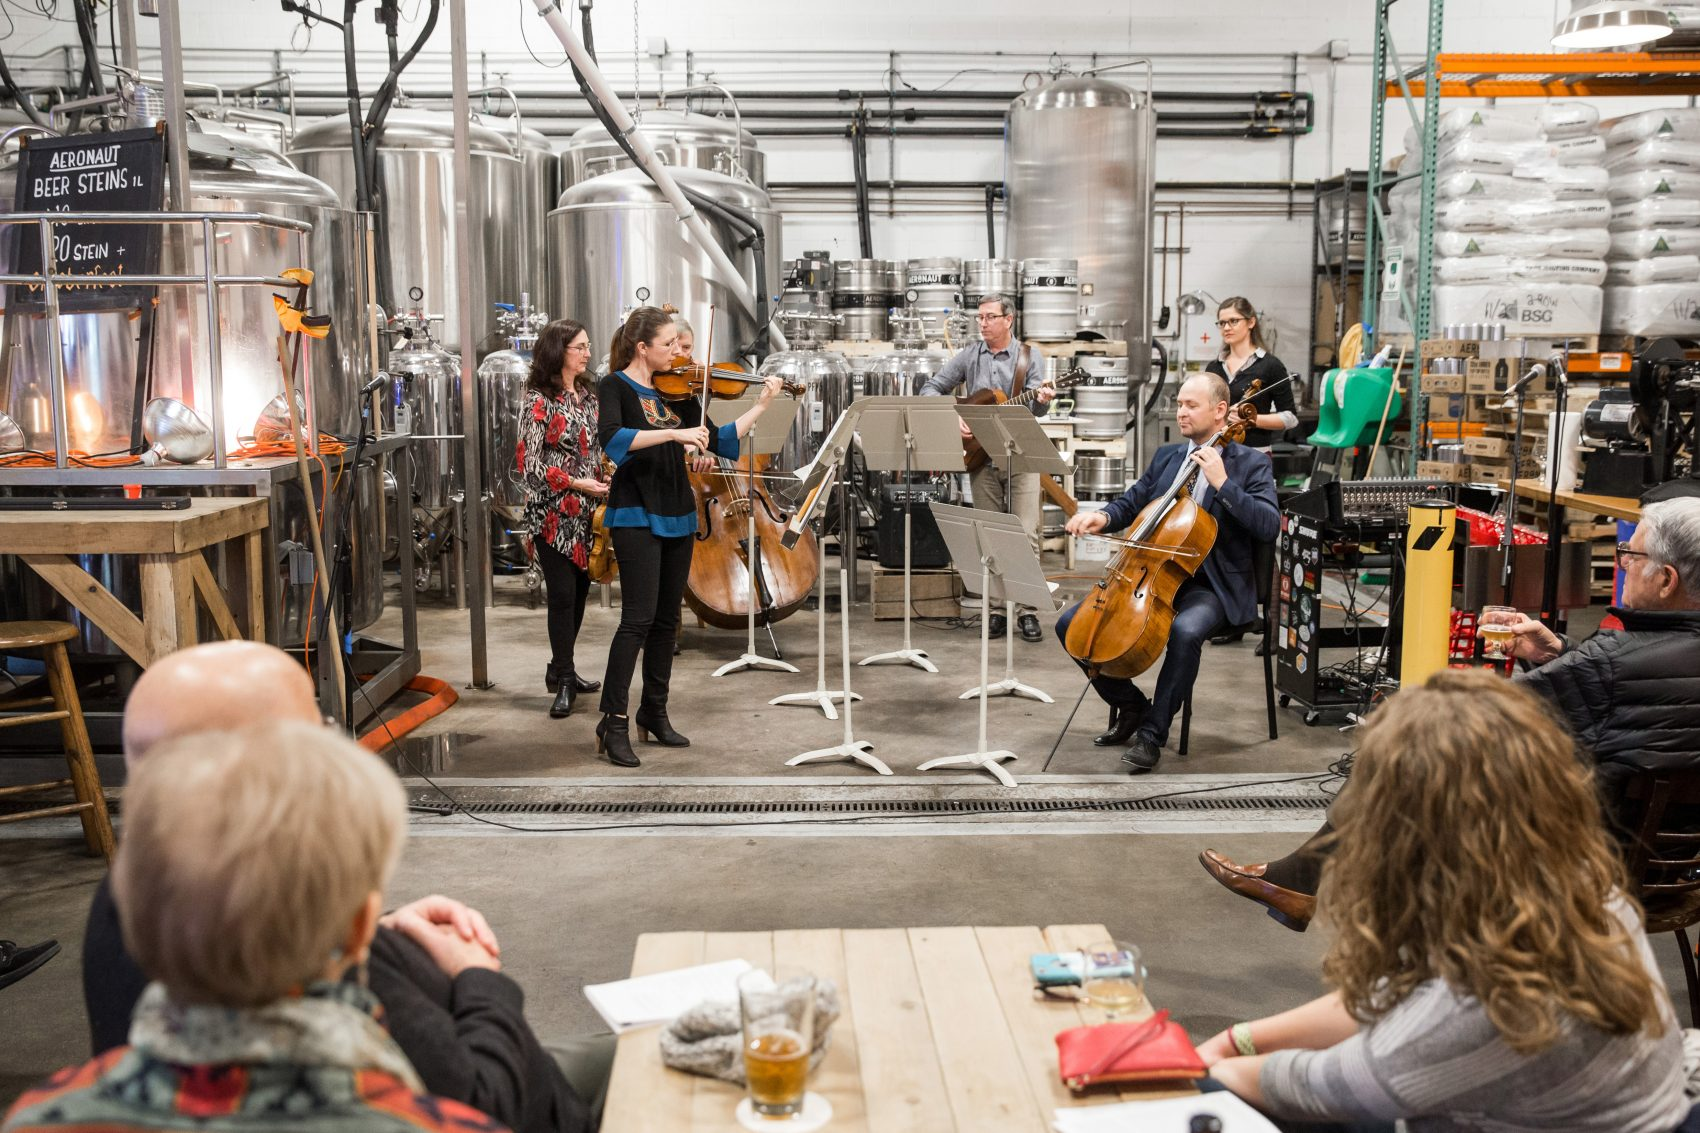 Members of the Boston Symphony Orchestra play at Aeronaut Brewing Company for a community program in 2016. (Courtesy Aram Boghosian/BSO)